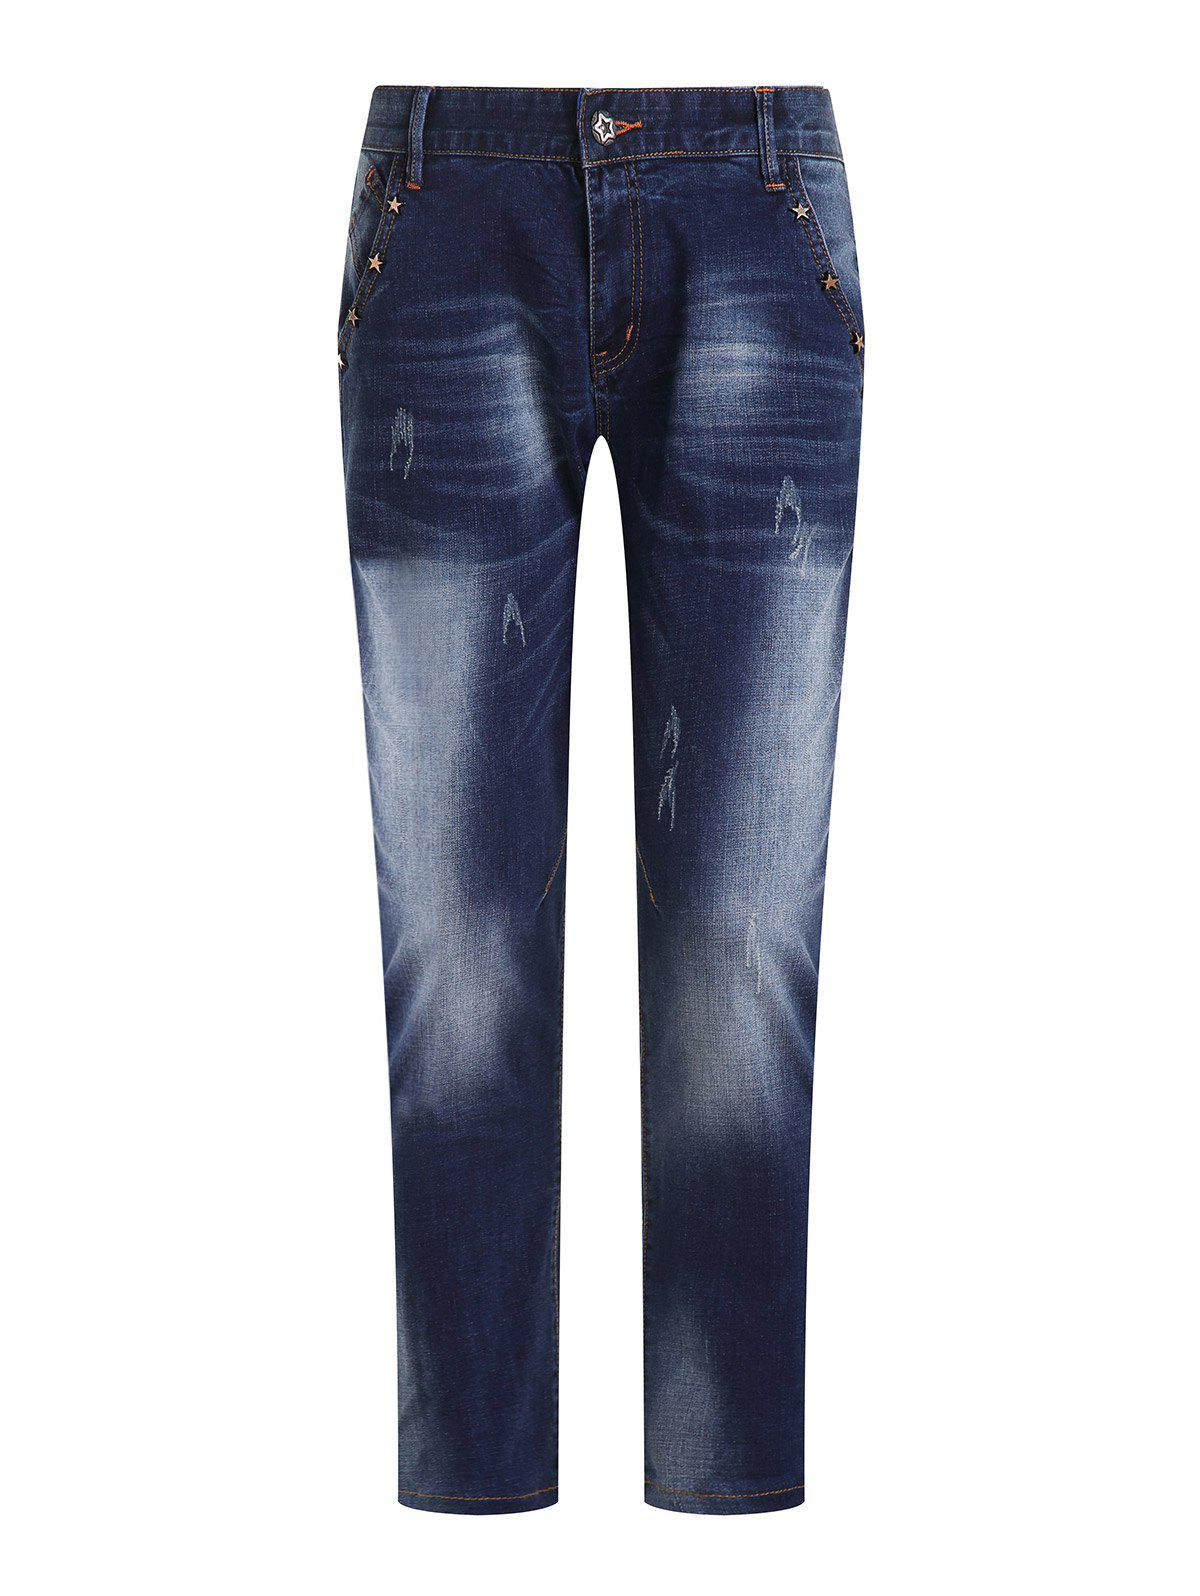 Men's Fashion Ripped Zip Fly Straight Legs Cropped Jeans - BLUE GRAY 31